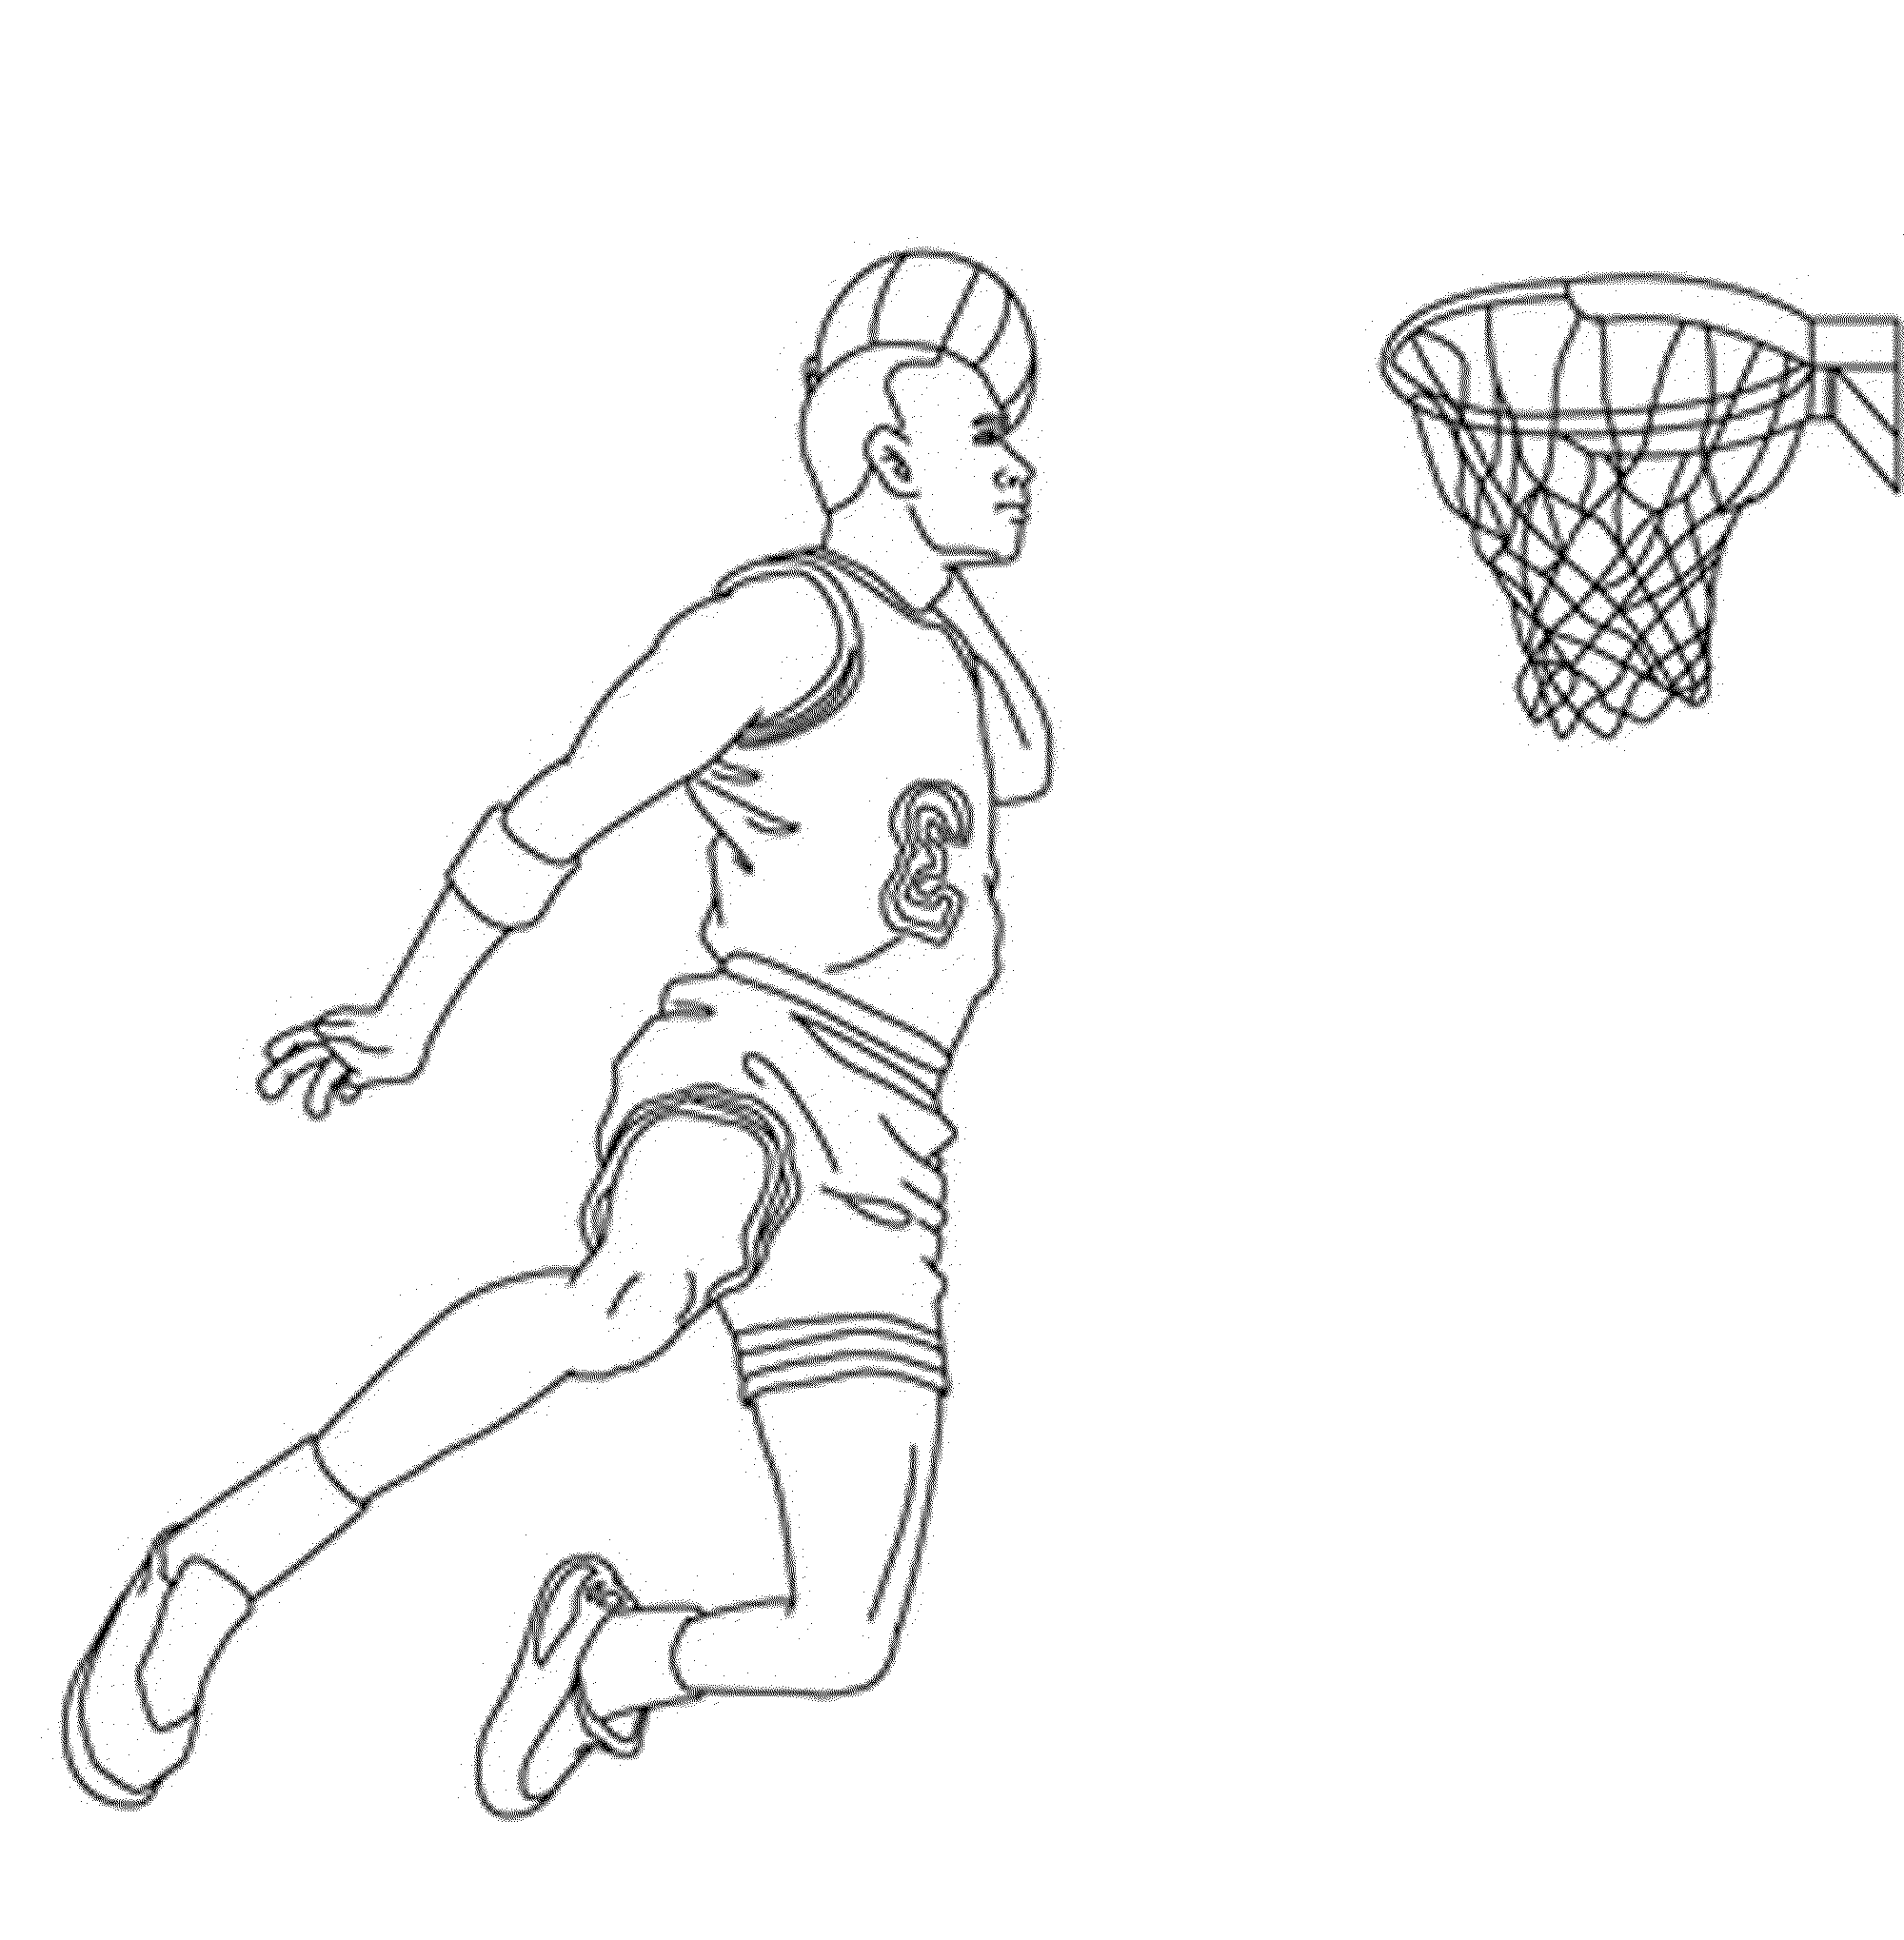 nba players coloring pages basketball player peja stojakovic nba coloring page coloring pages nba players